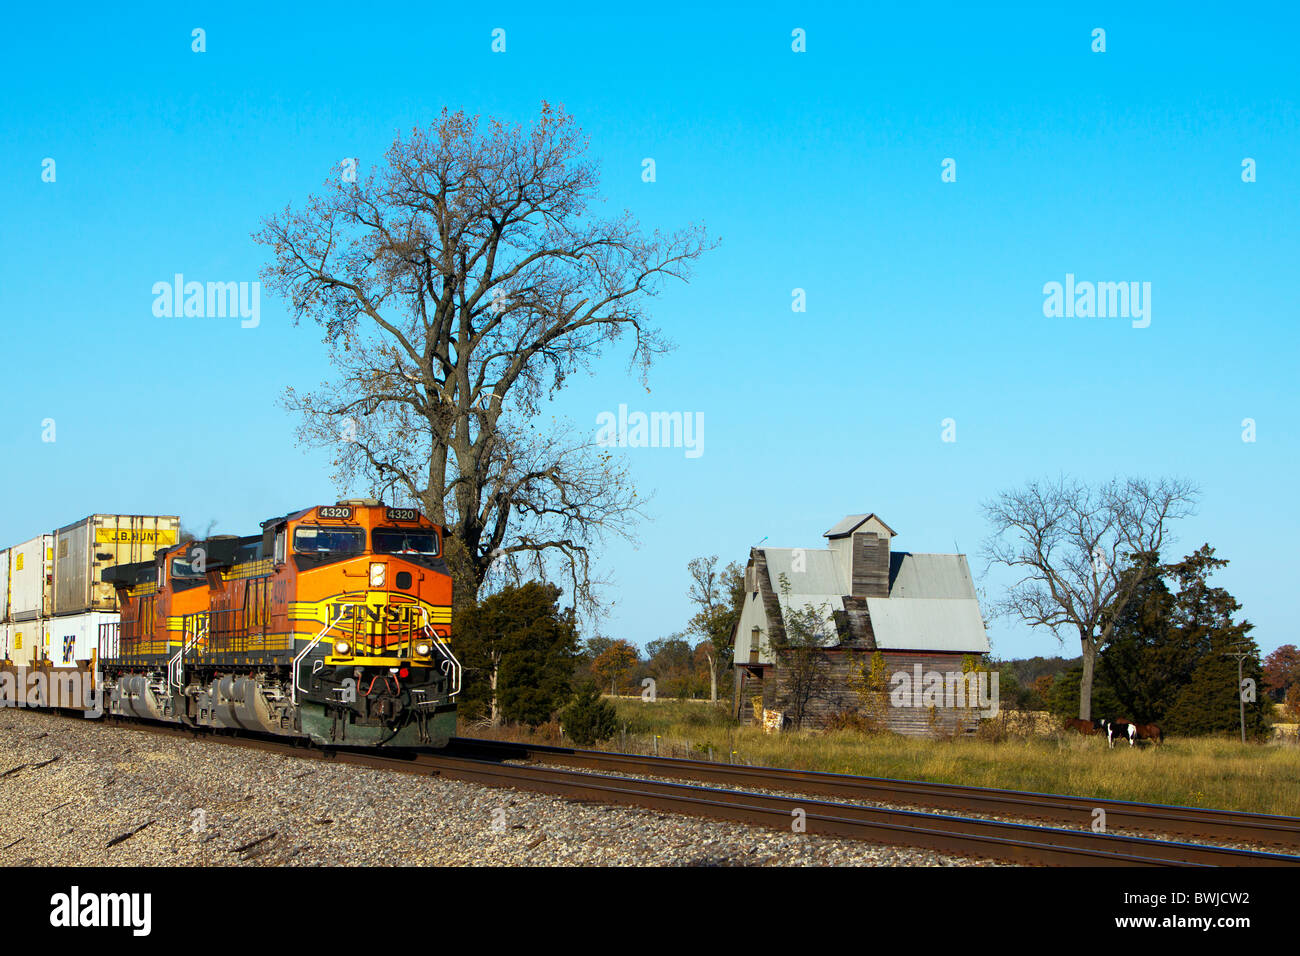 A BNSF Railway intermodal freight train in Illinois. - Stock Image